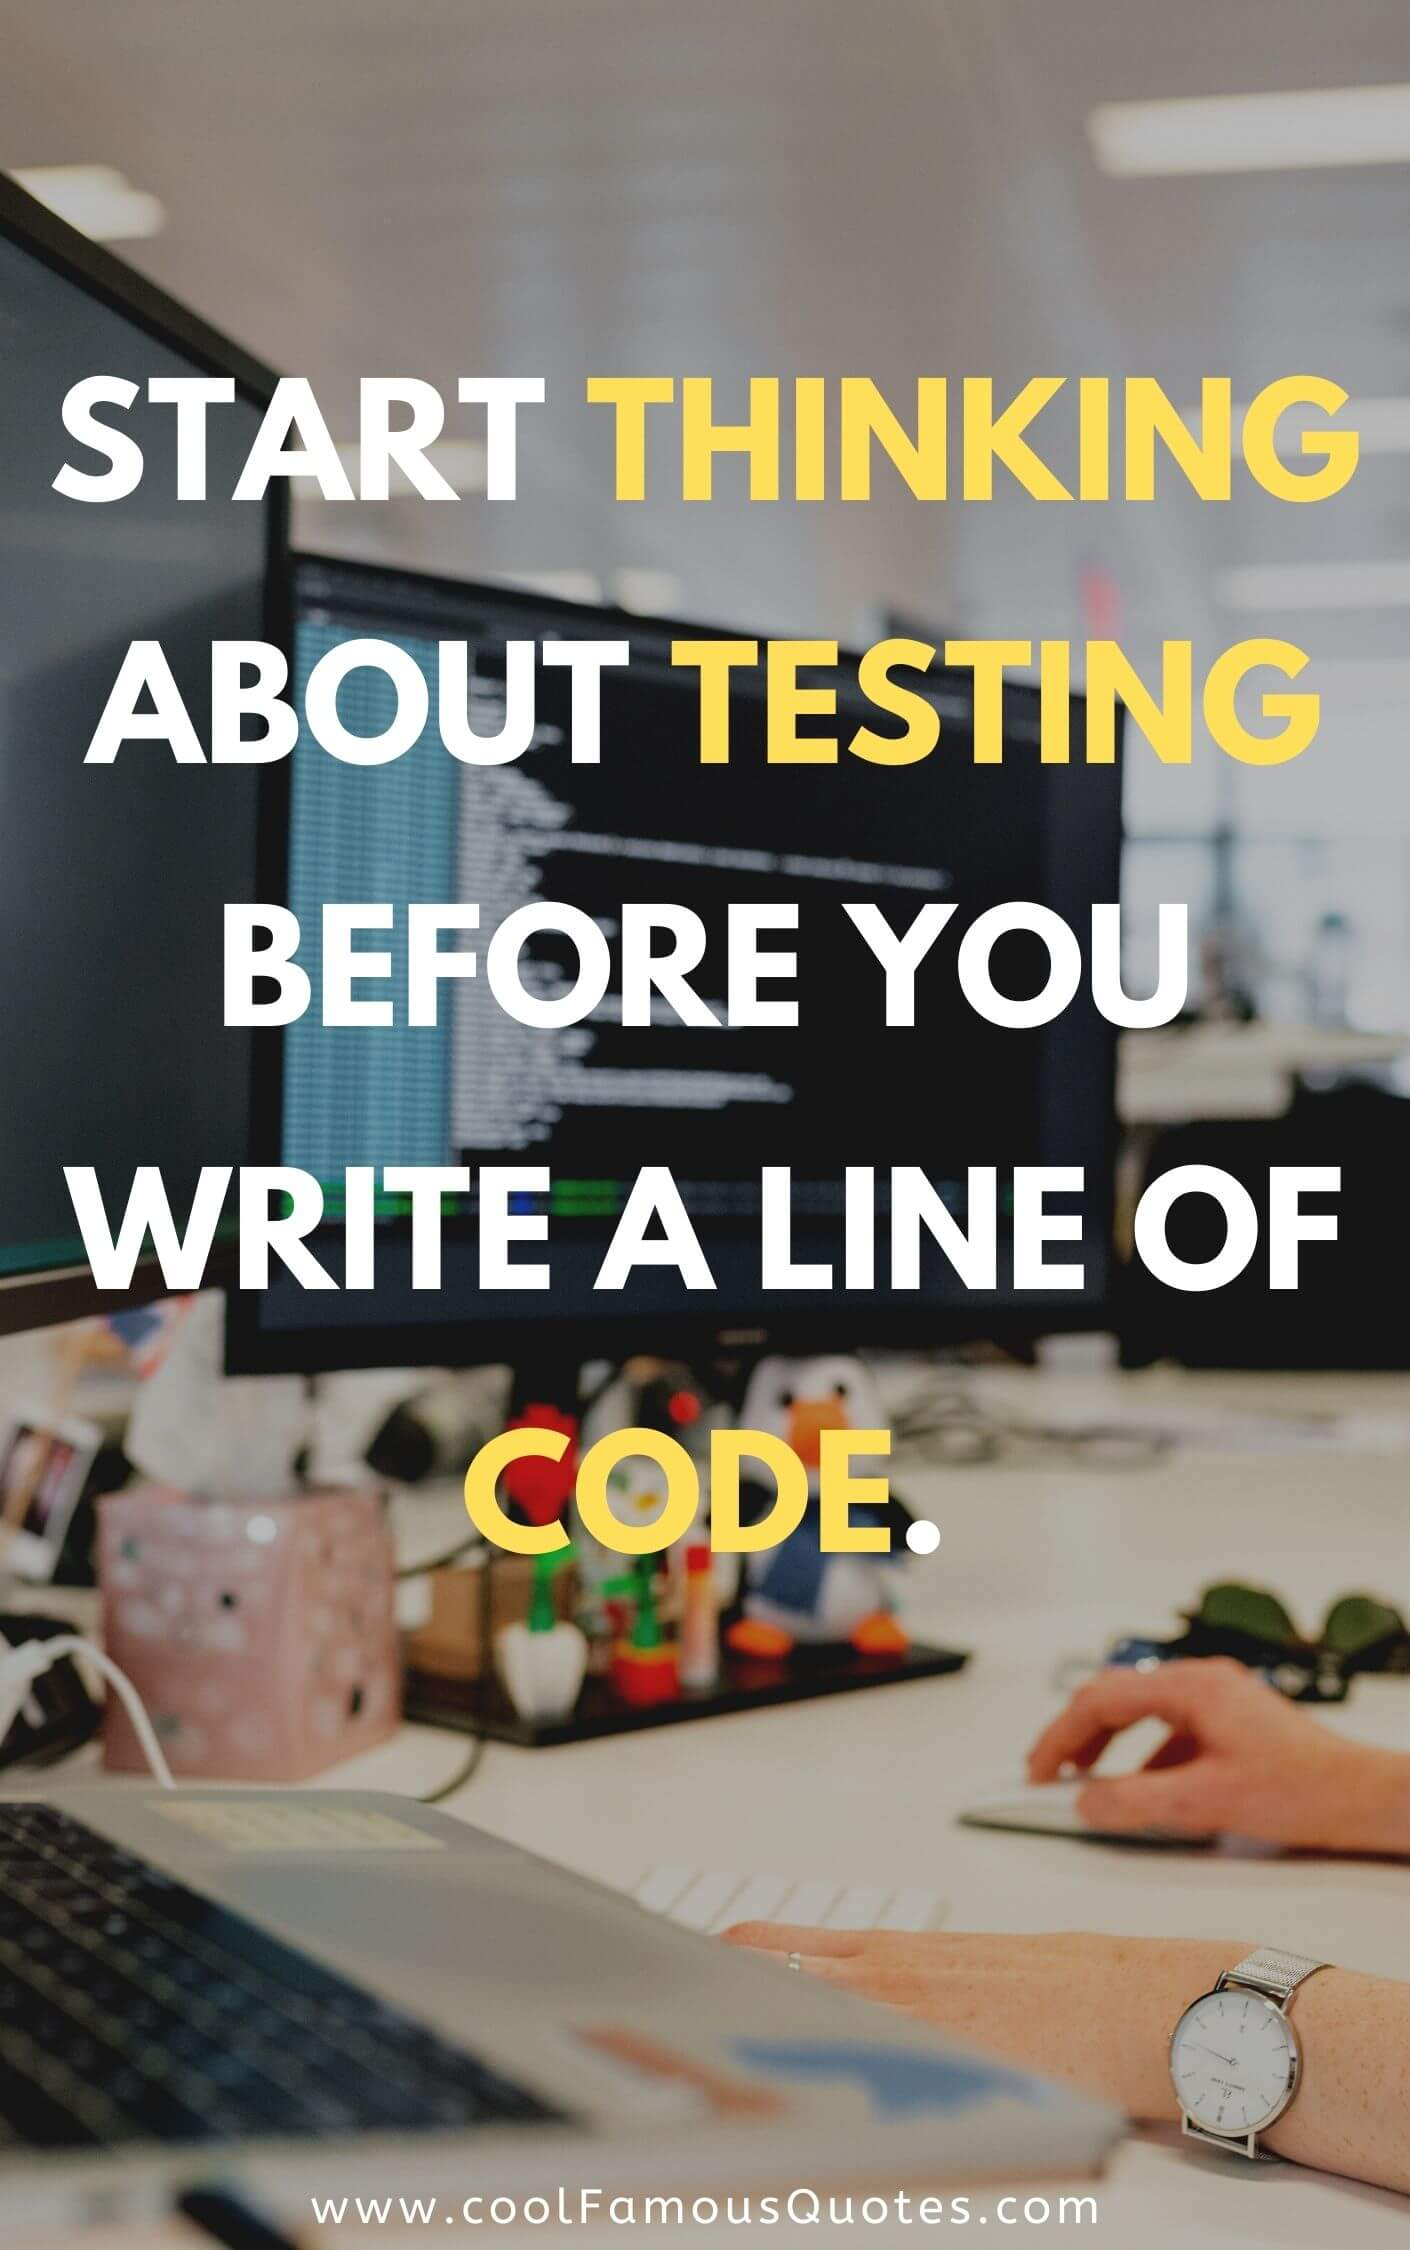 Start thinking about testing before you write a line of code.